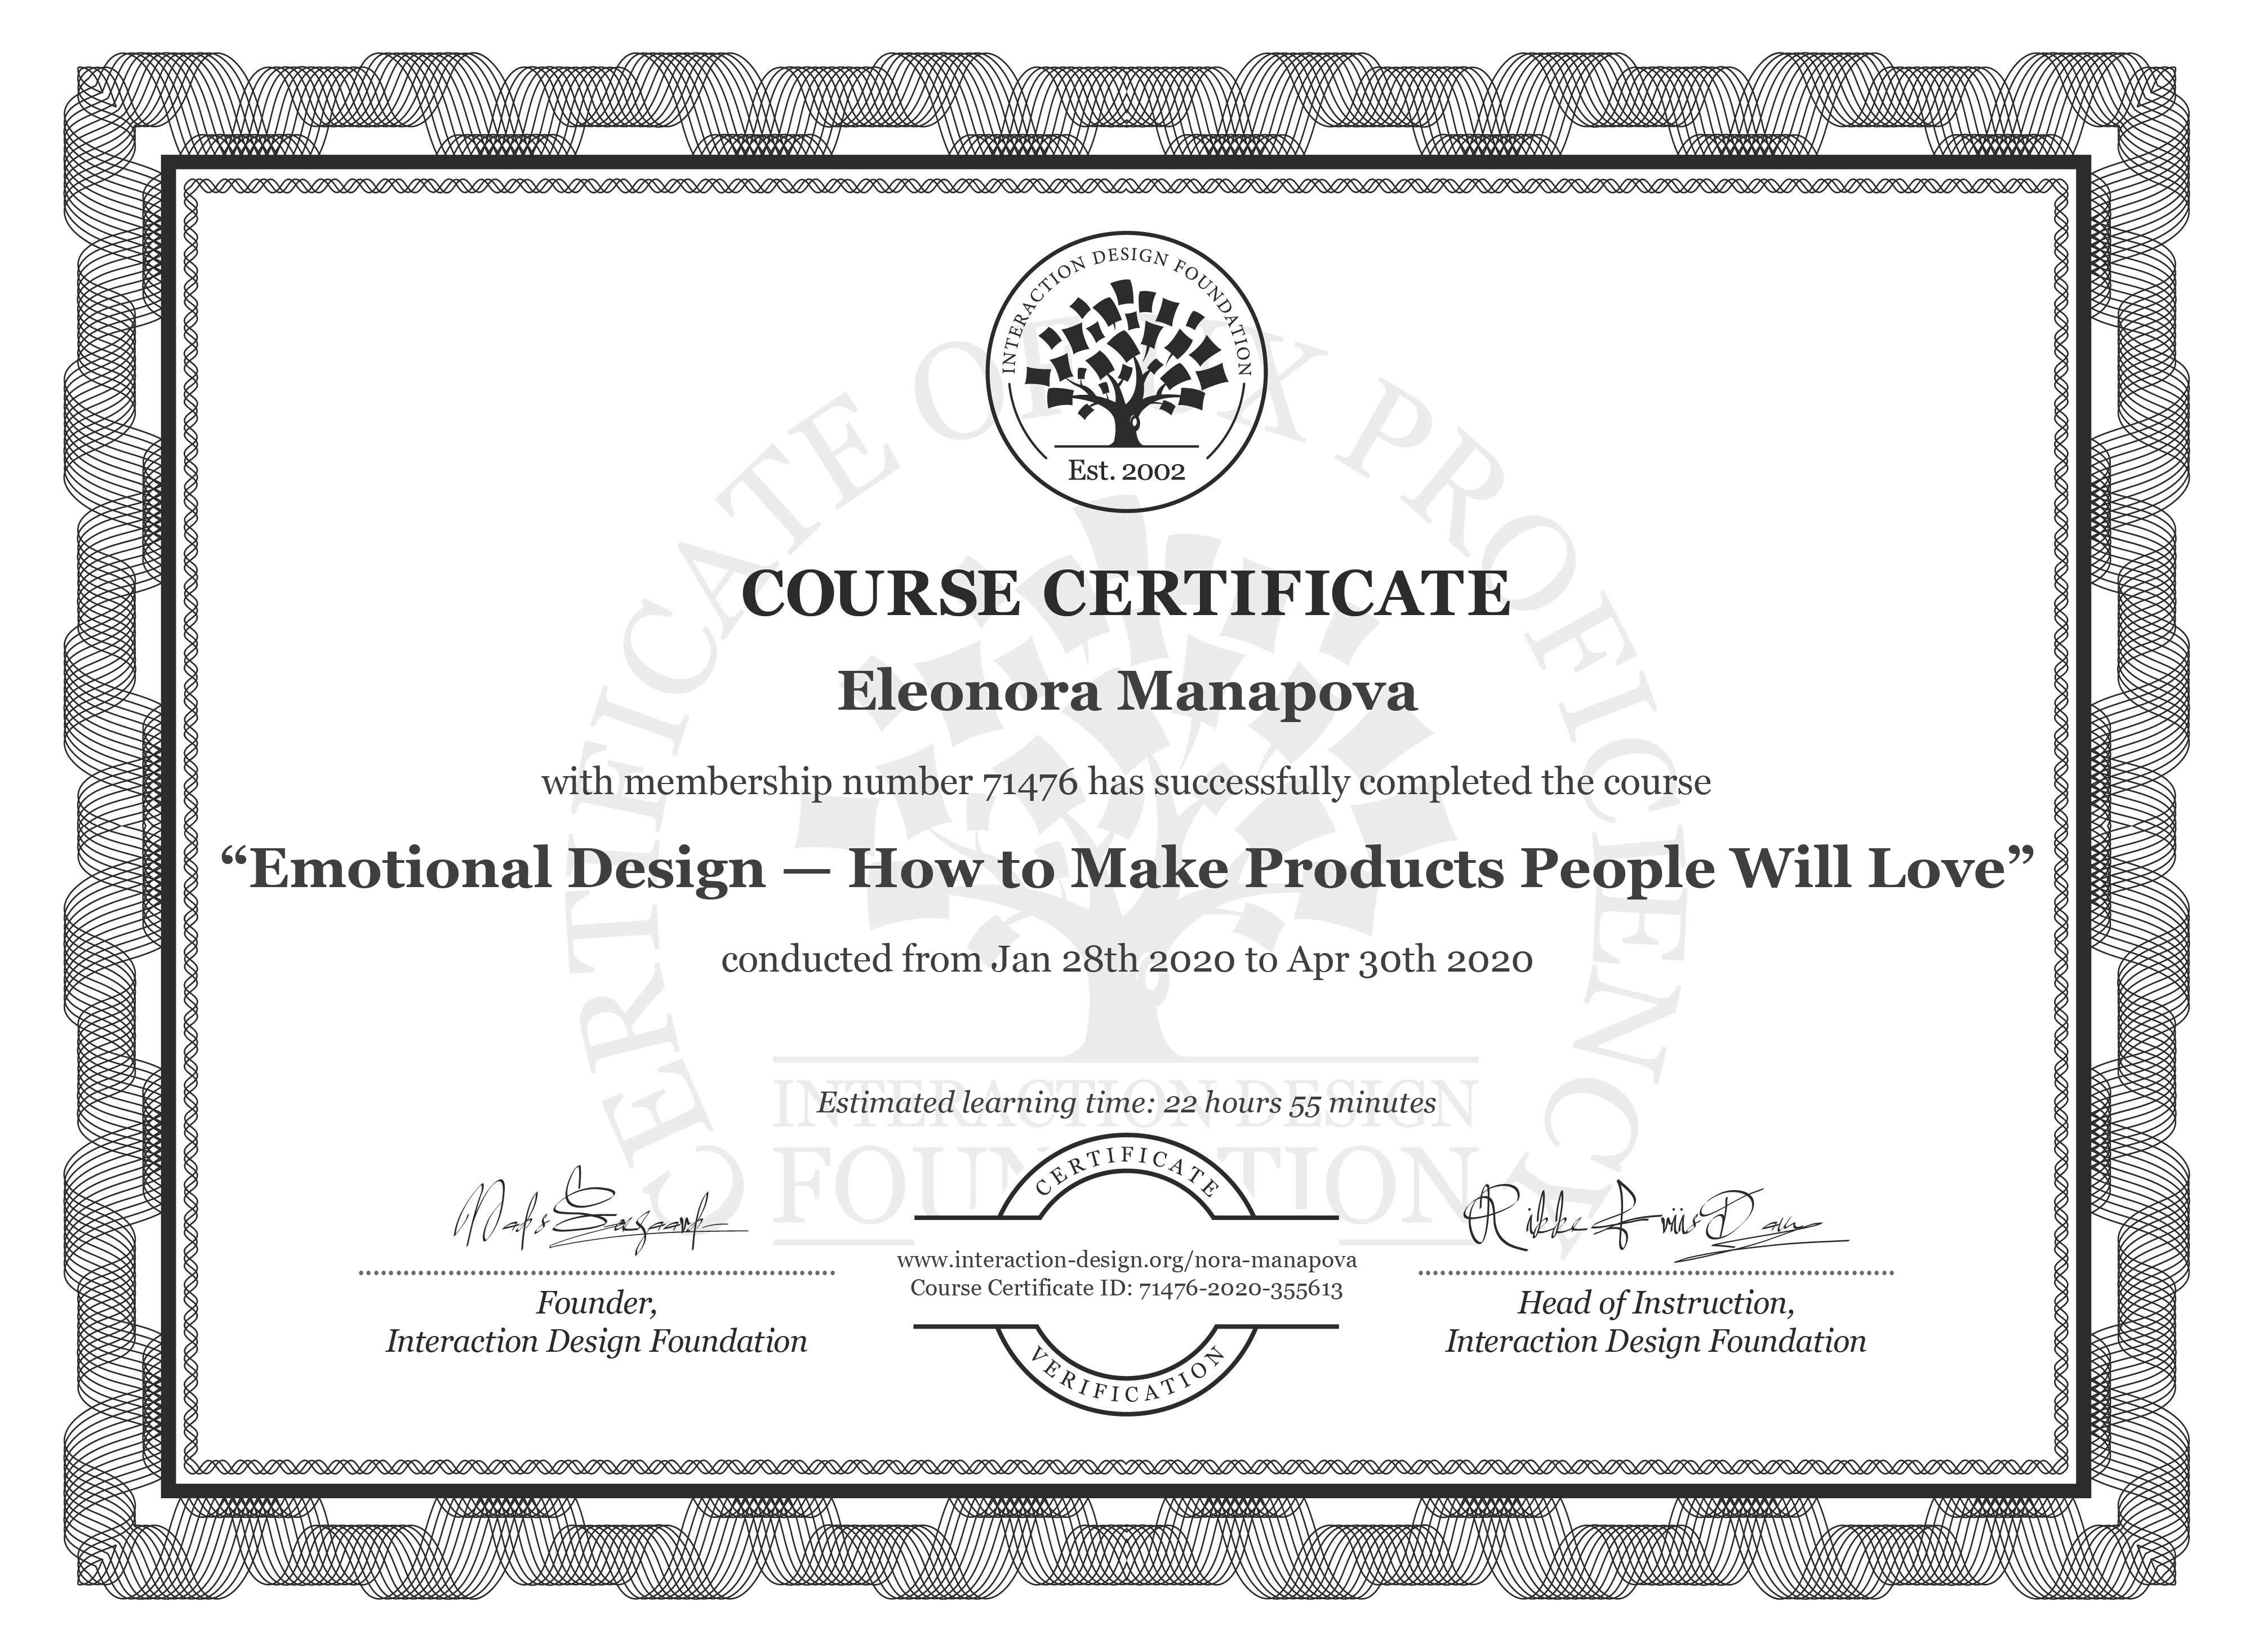 Eleonora Manapova's Course Certificate: Emotional Design — How to Make Products People Will Love